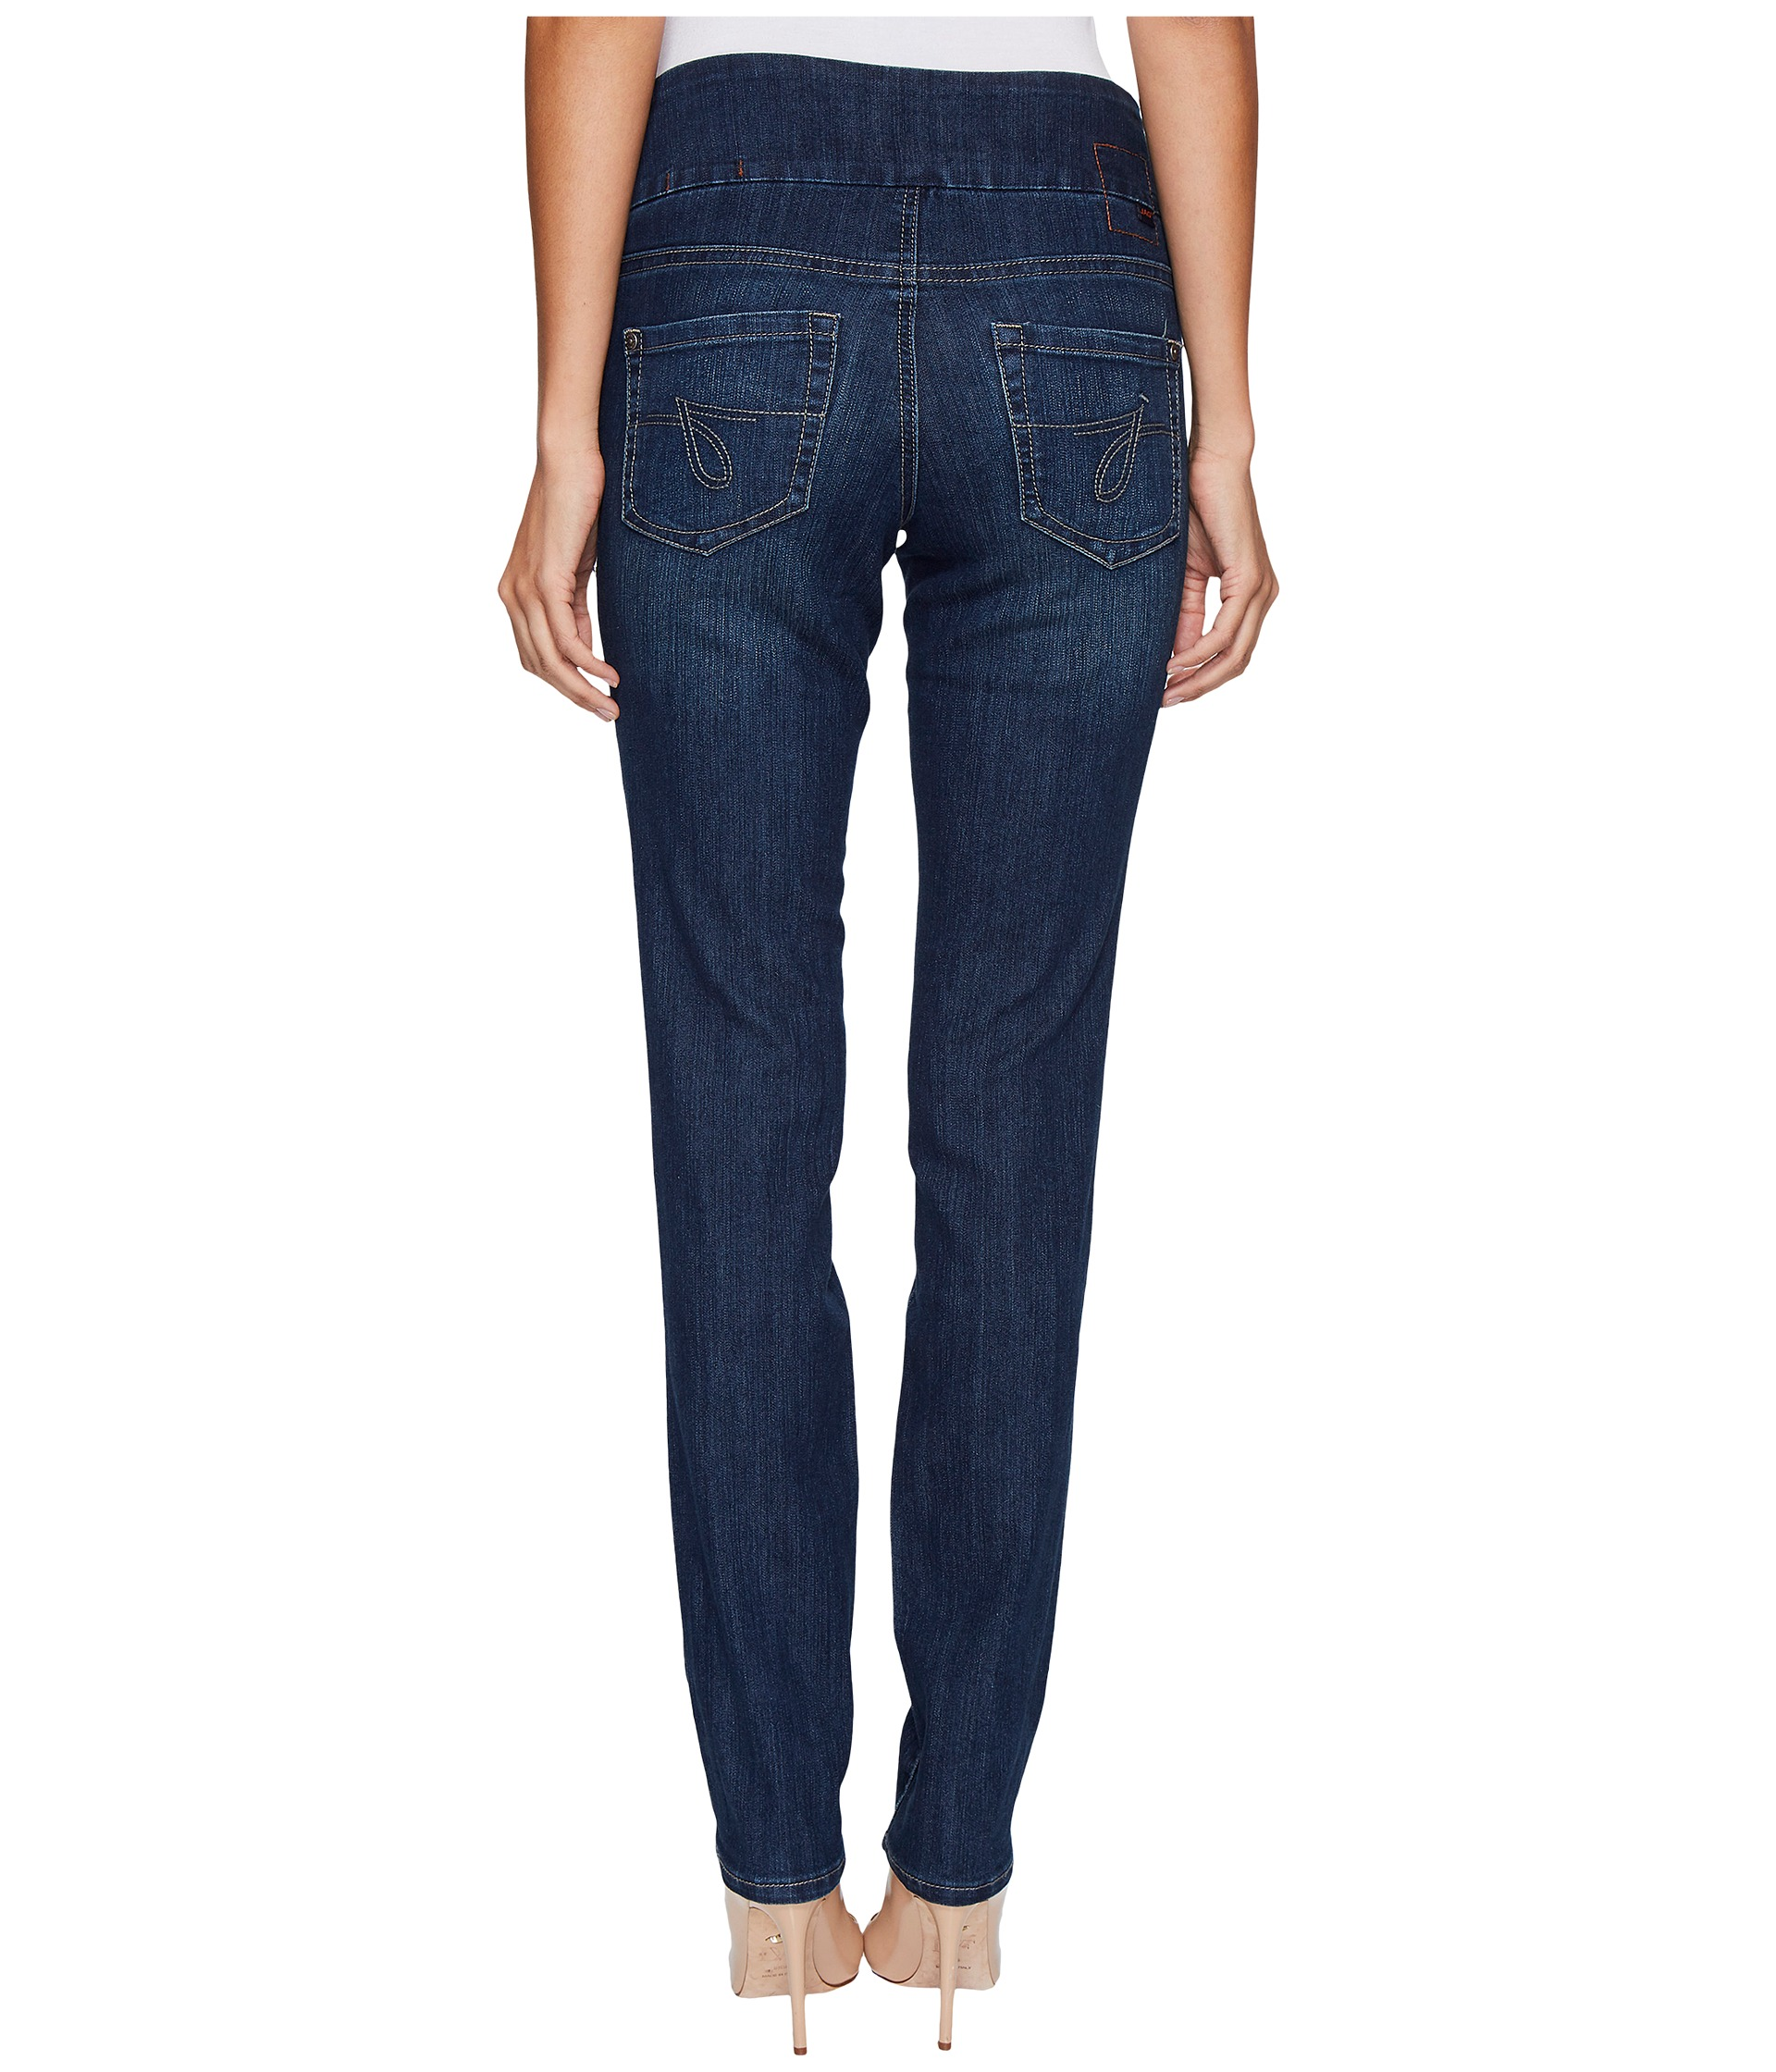 Jag Jeans Malia Pull-On Slim in Blue Shadow at Zappos.com